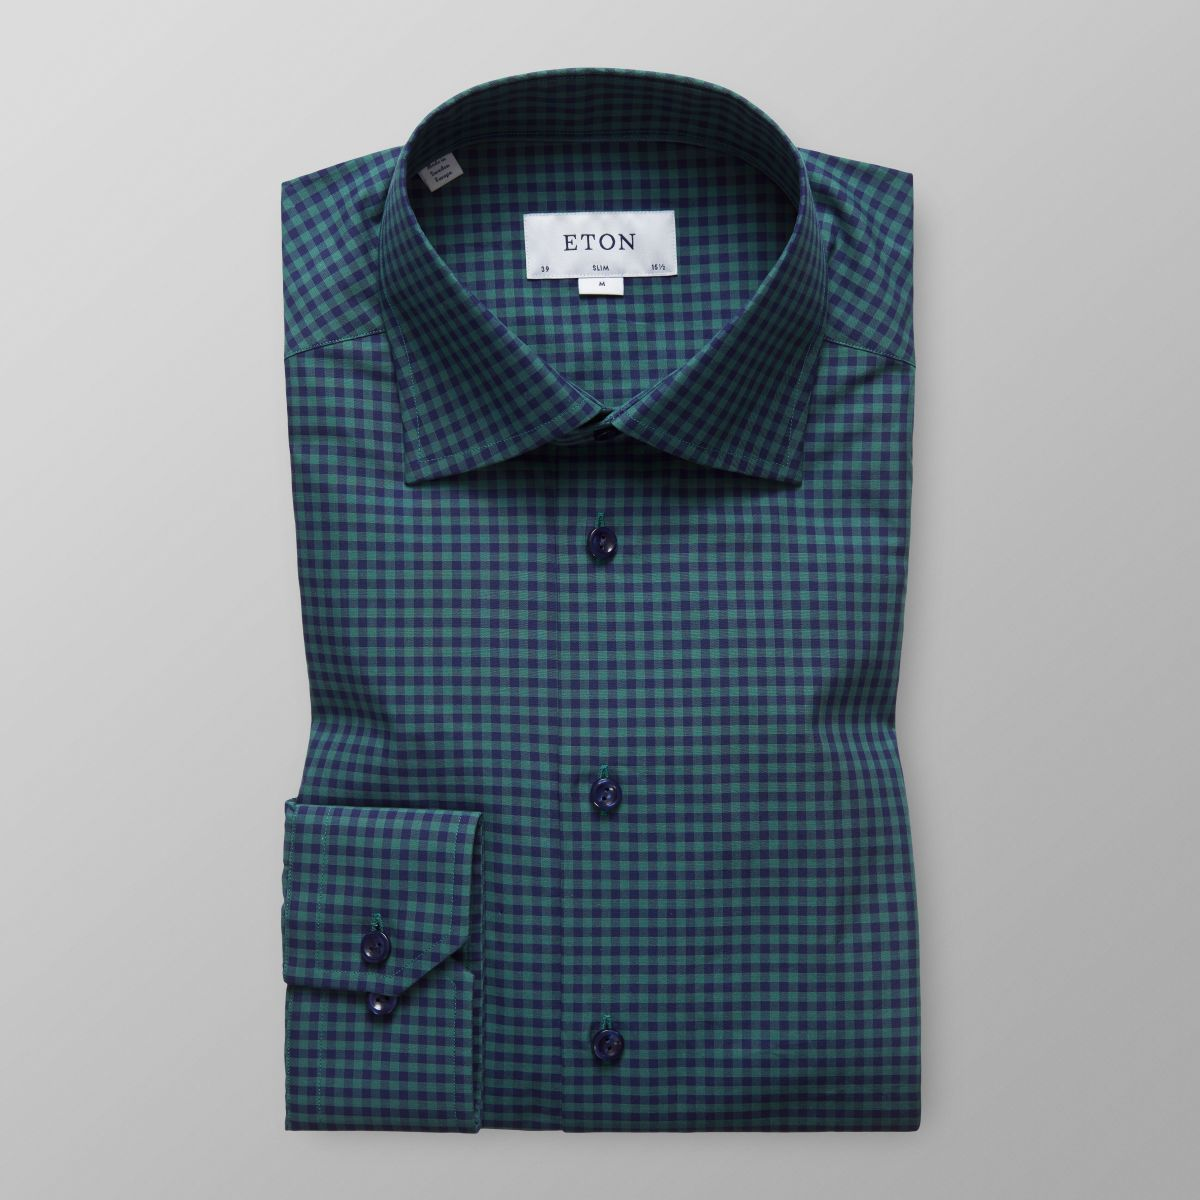 New Cheap Online Slim fit Green Gingham Check Shirt Eton Limited Buy Cheap Geniue Stockist New Arrival Sale Online 8j5Zdt8qlA